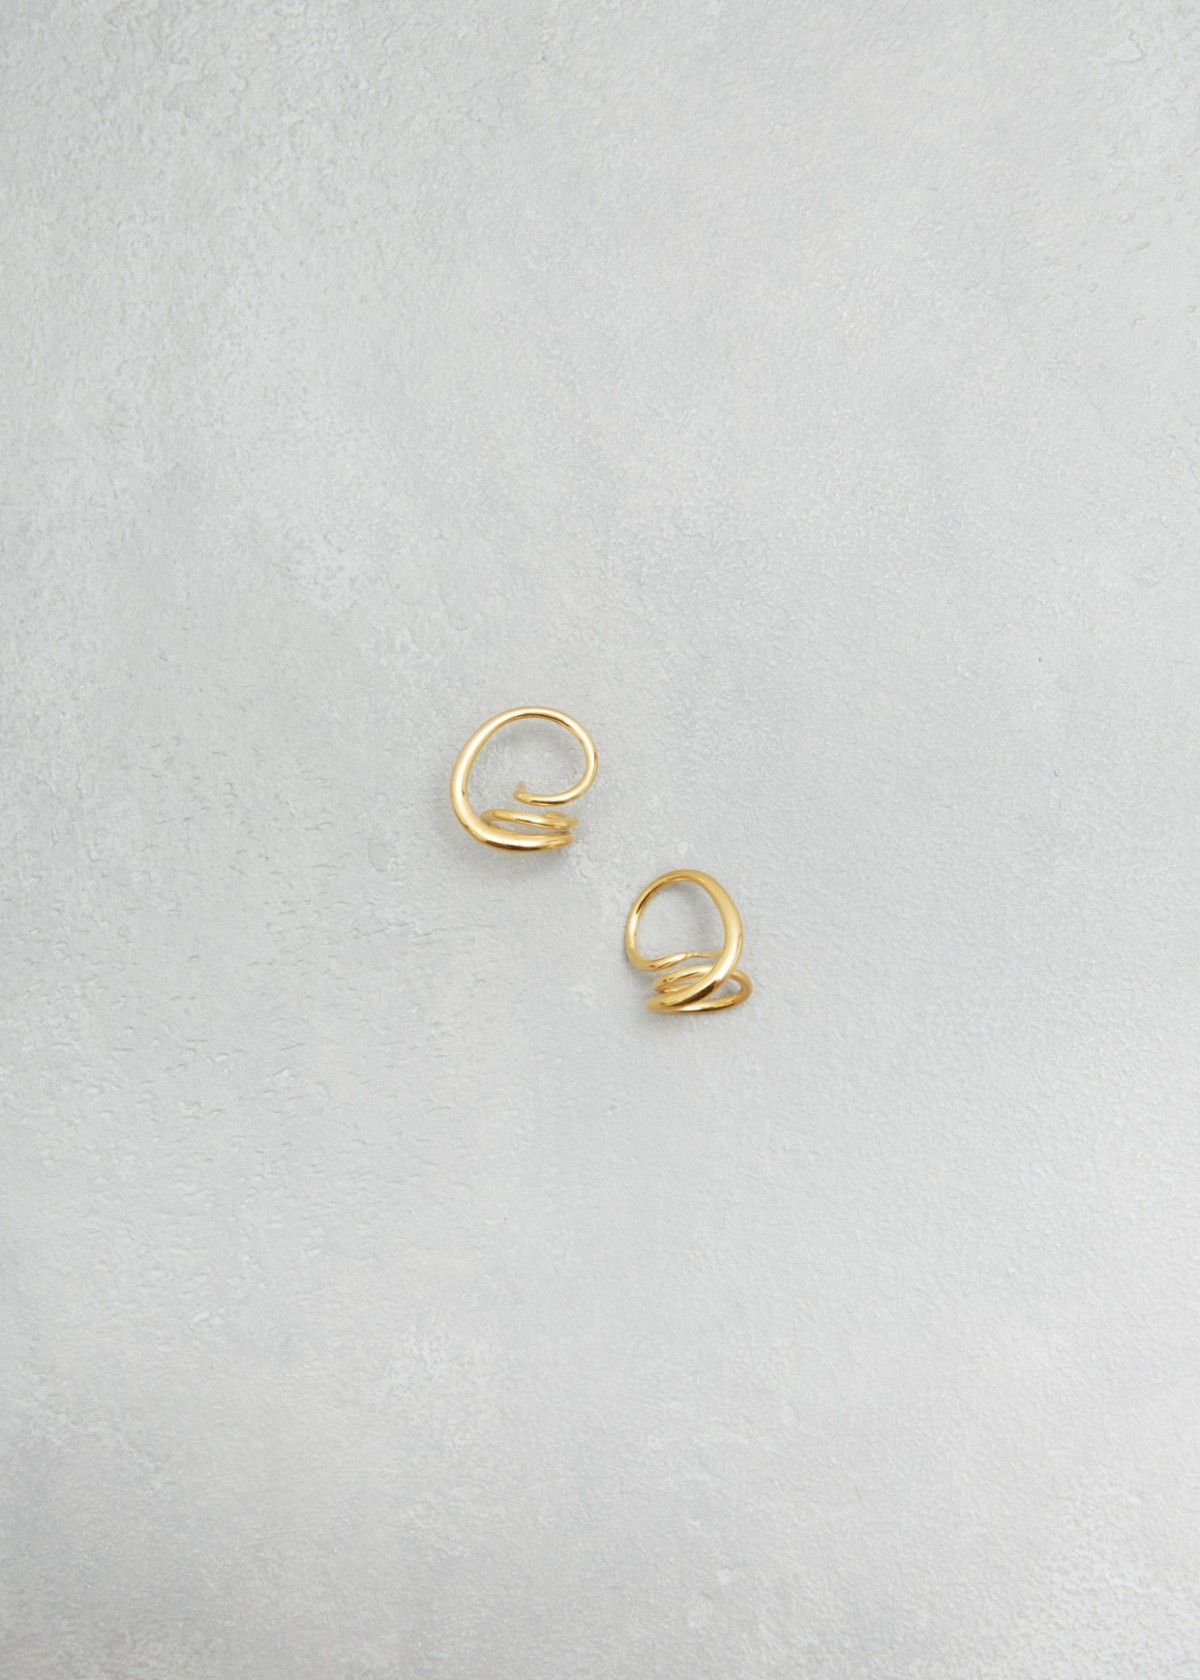 Round trip earrings what to put on pinterest round trip k